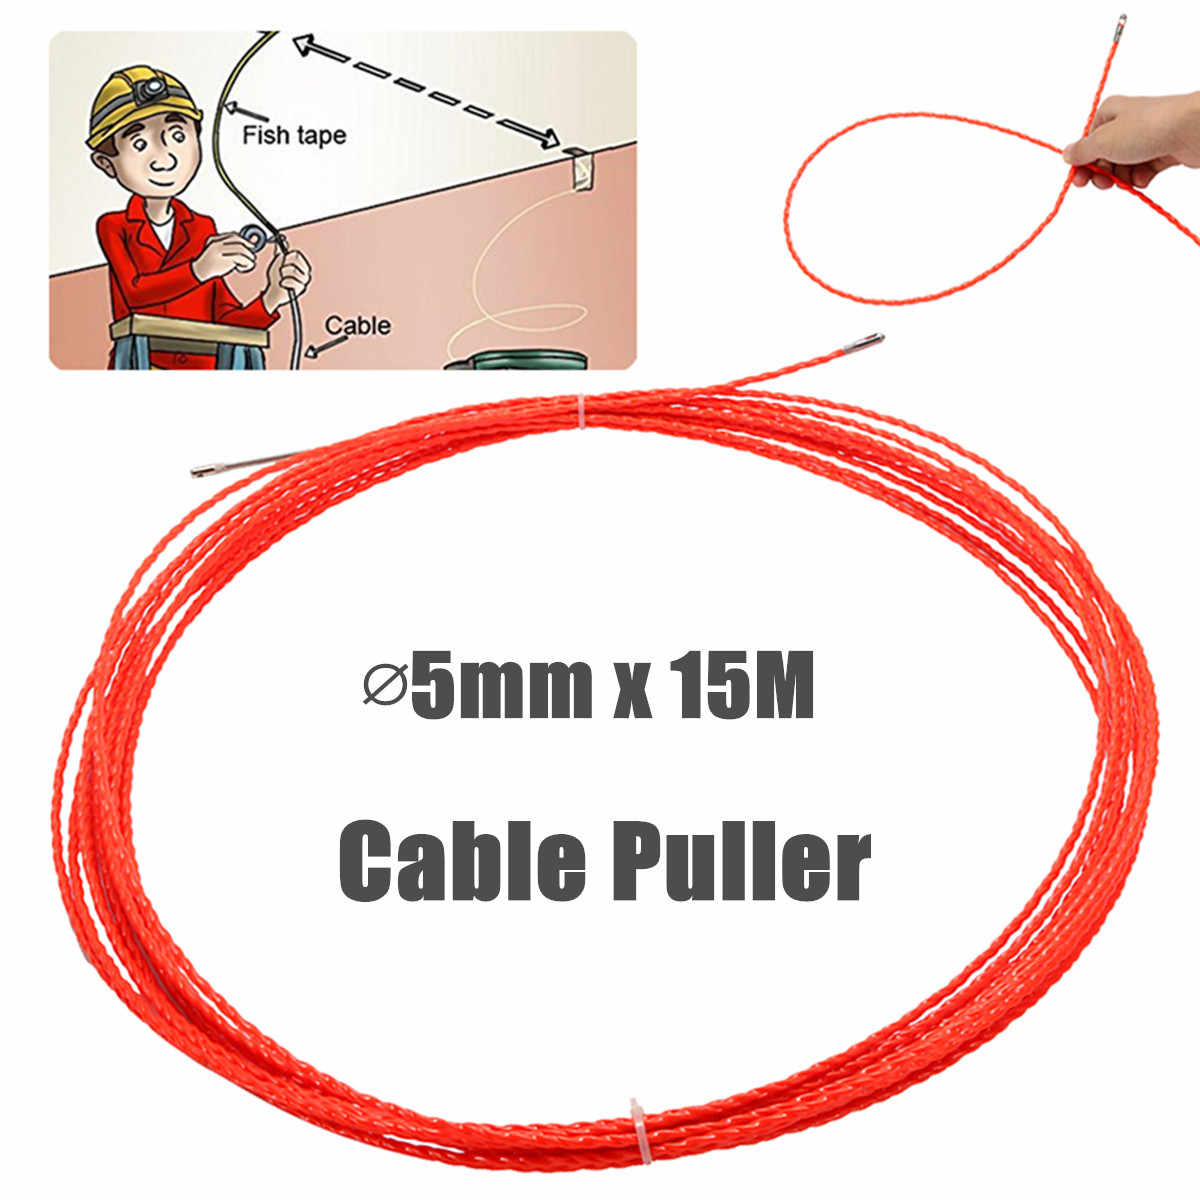 5mm 15M Professional Cable Push Puller Rodder Reel Conduit ... Wiring Snake on